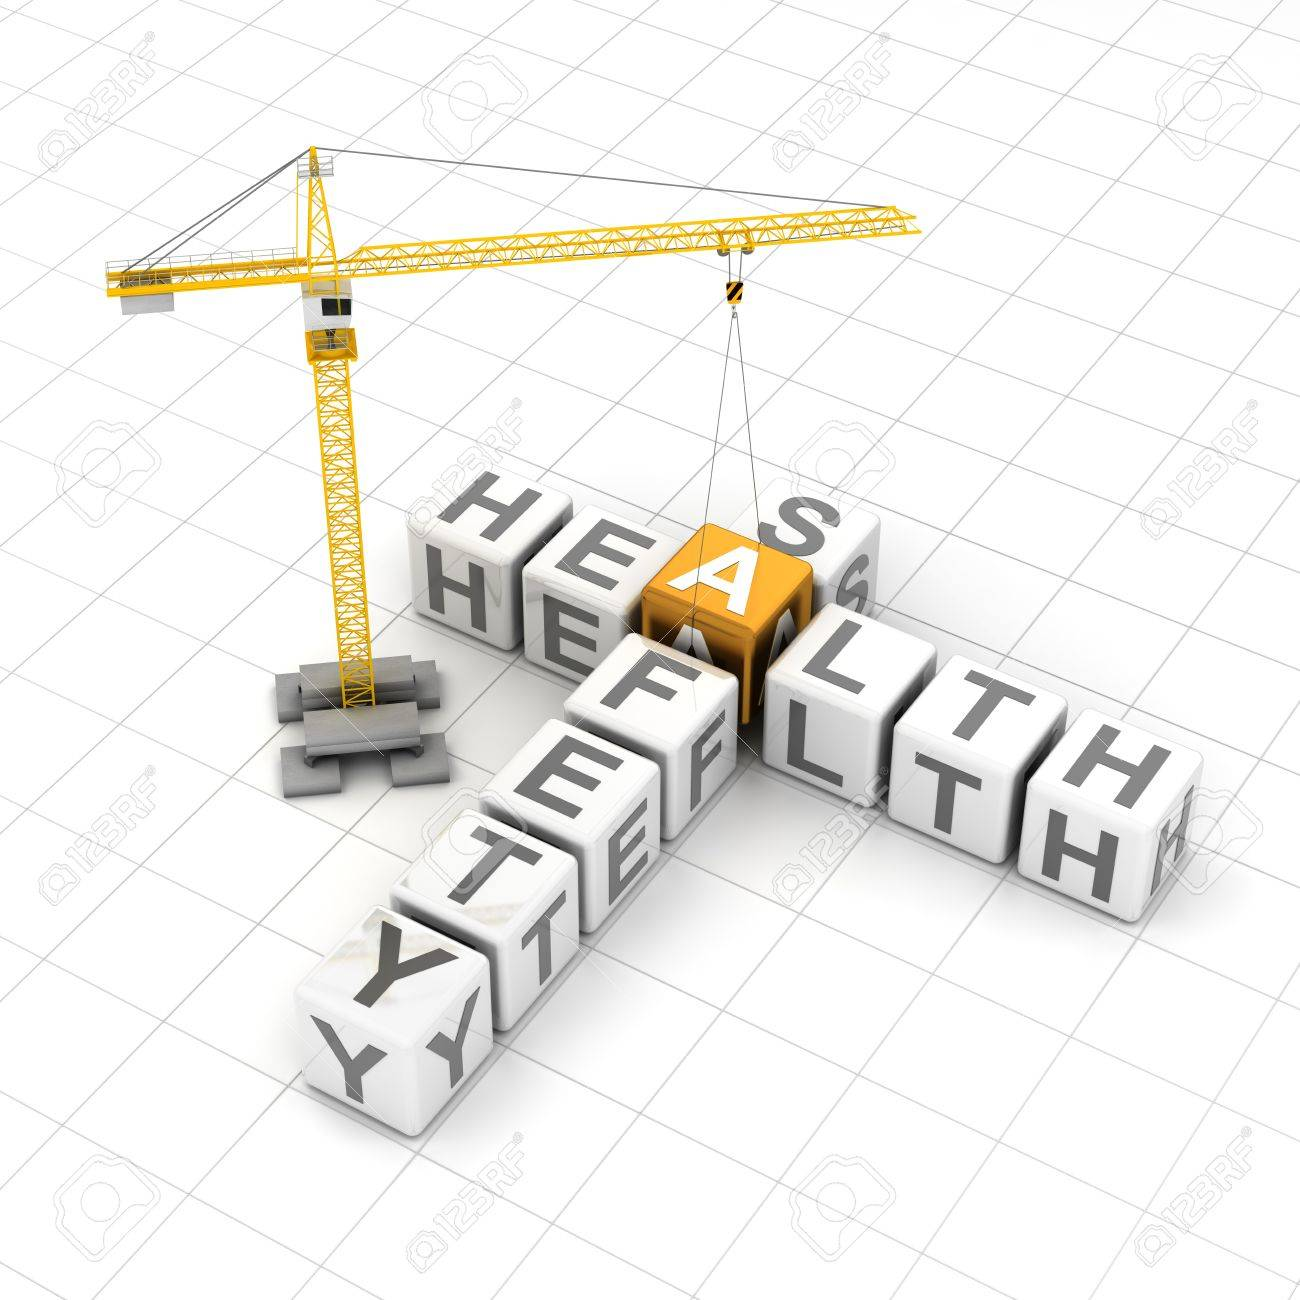 Health And Safety Crossword Puzzle With Crane 3d Render Stock Photo